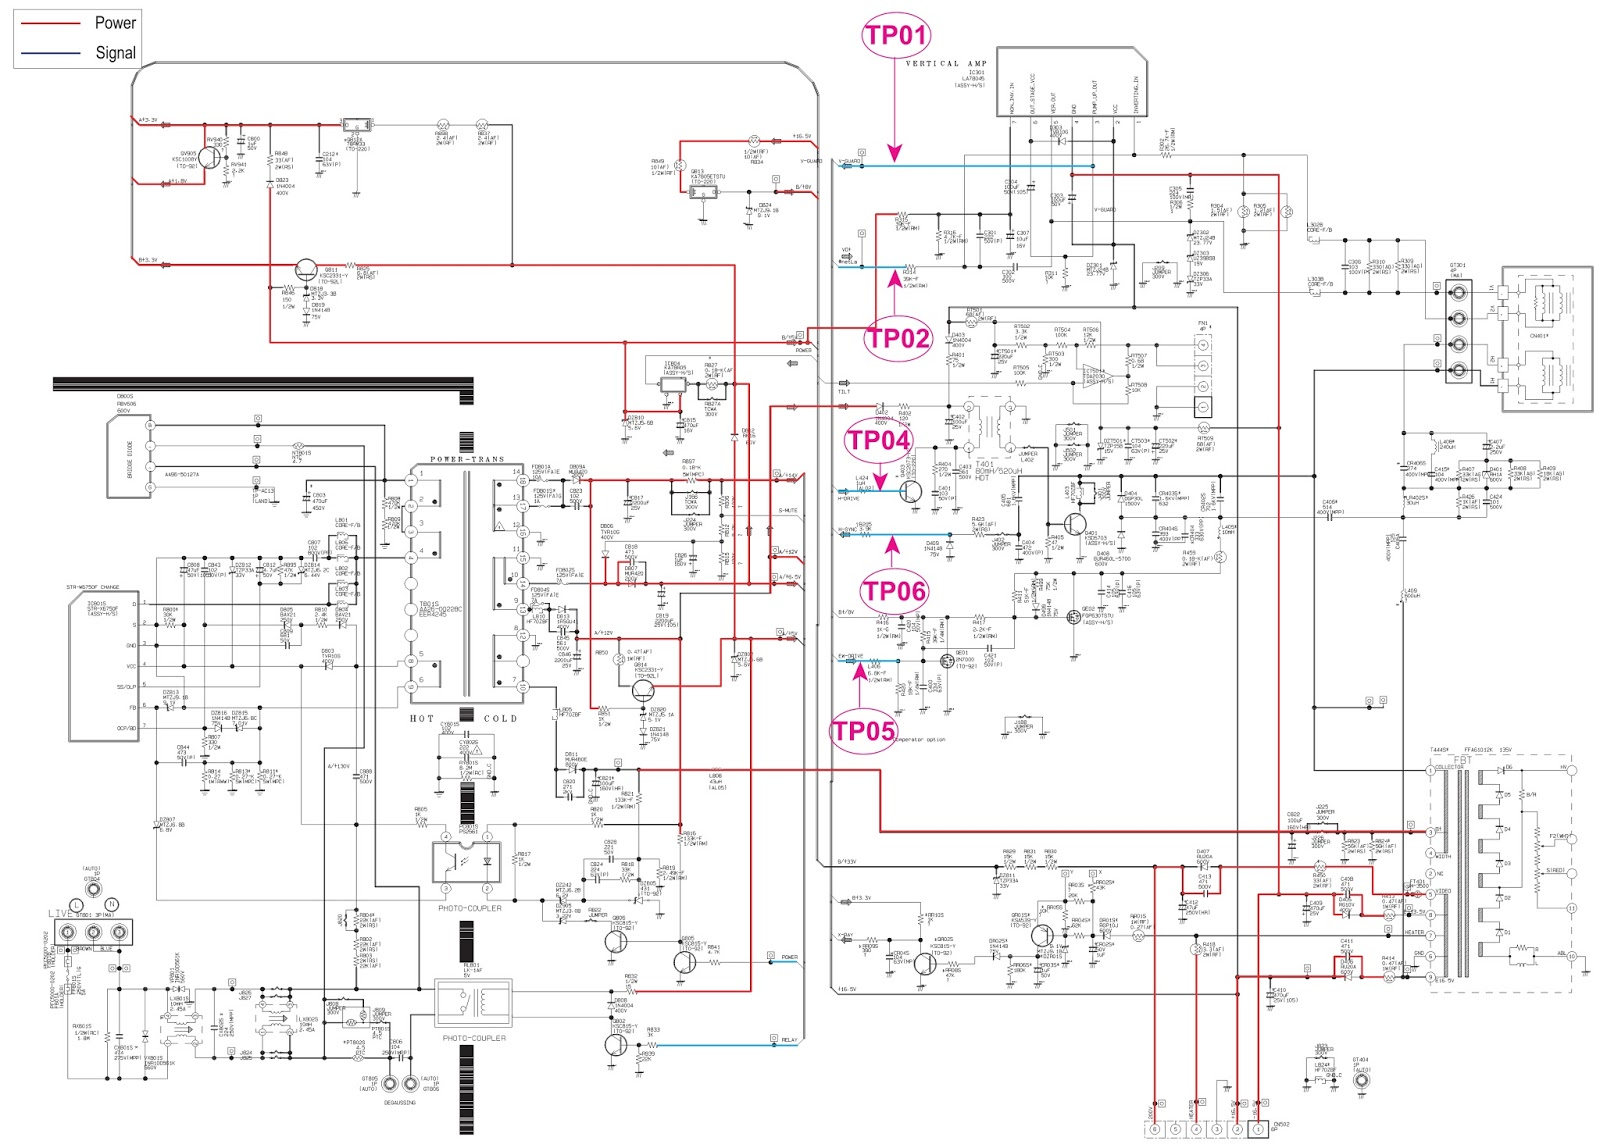 samsung cl29x50 power supply smps schematic circuit diagram str x6750f smps power supply schematic circuit diagram [ 1600 x 1148 Pixel ]